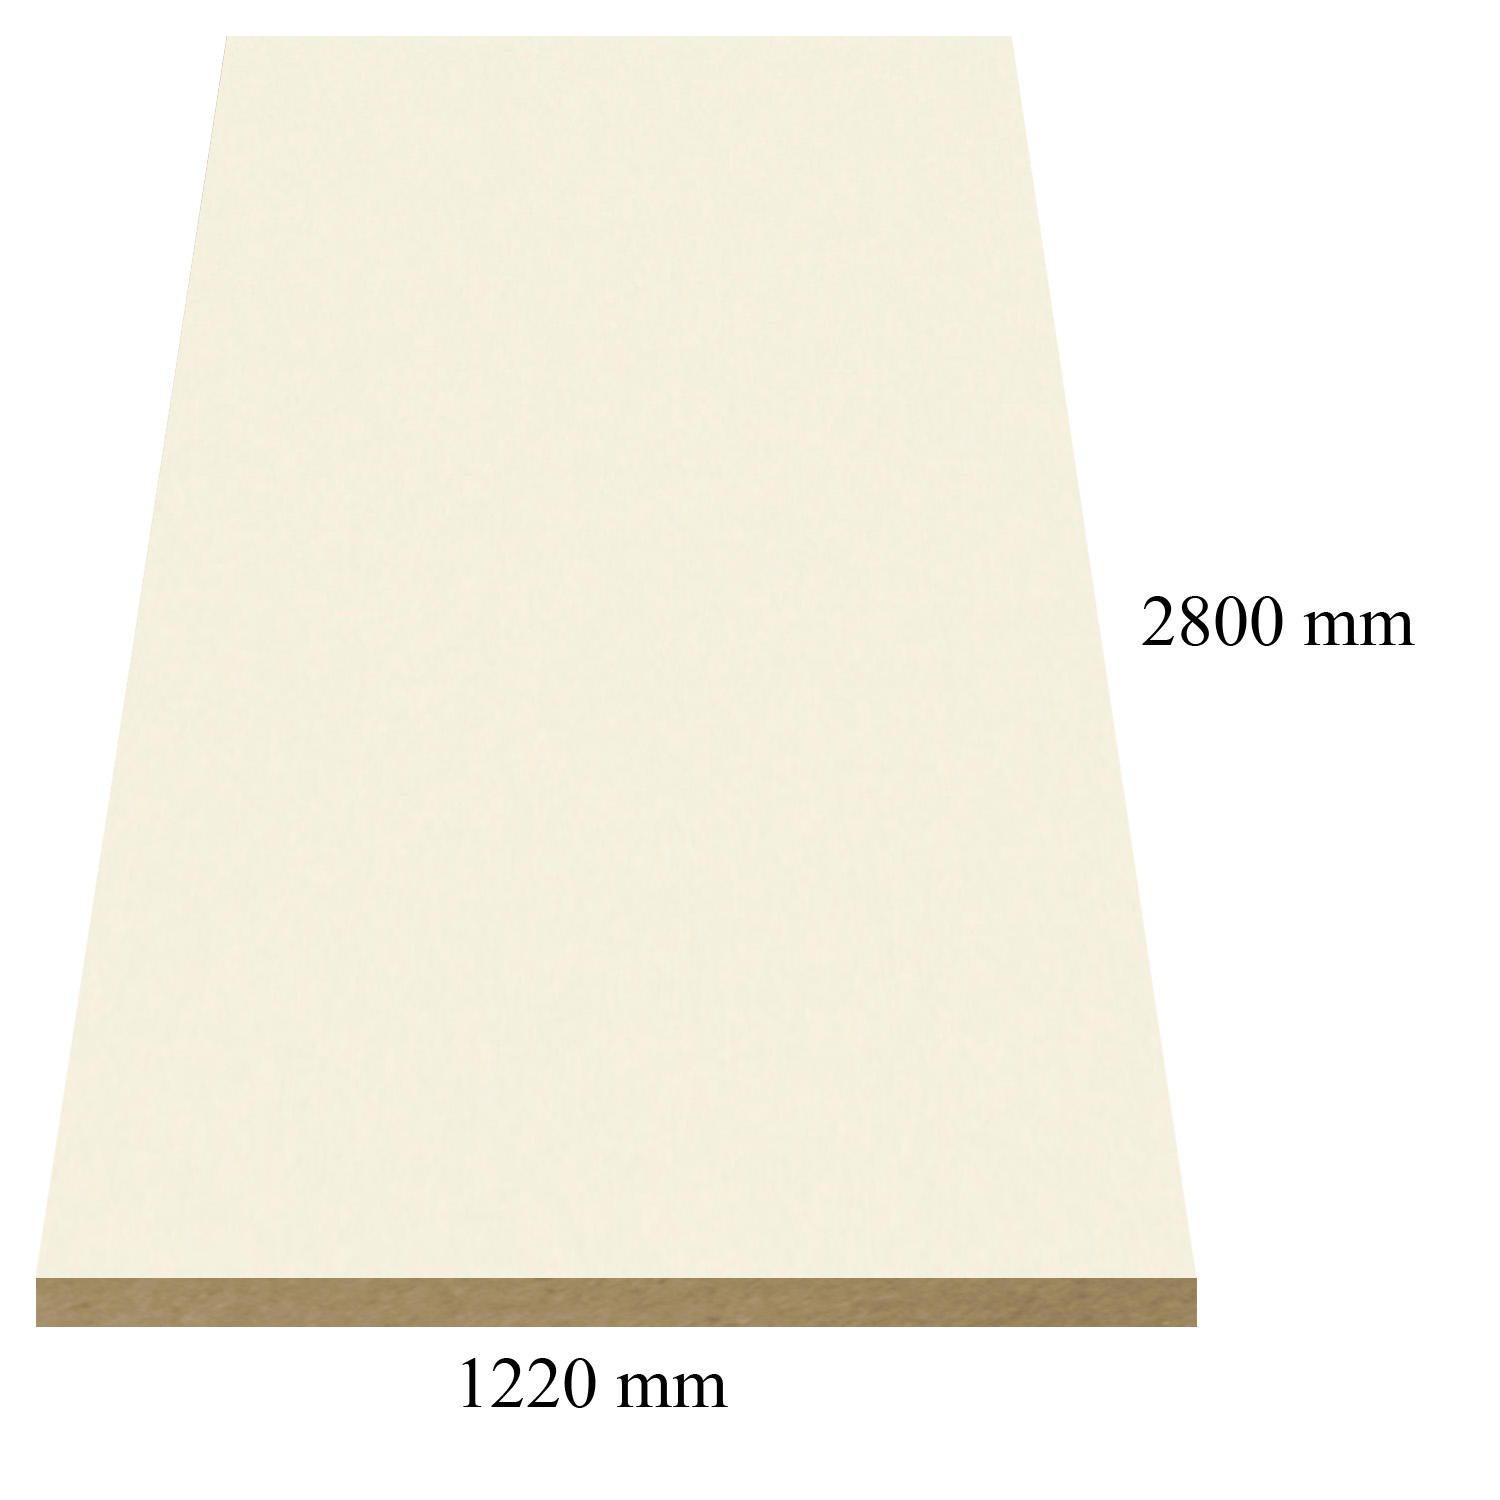 845 Bianco high gloss - PVC coated 18 mm MDF